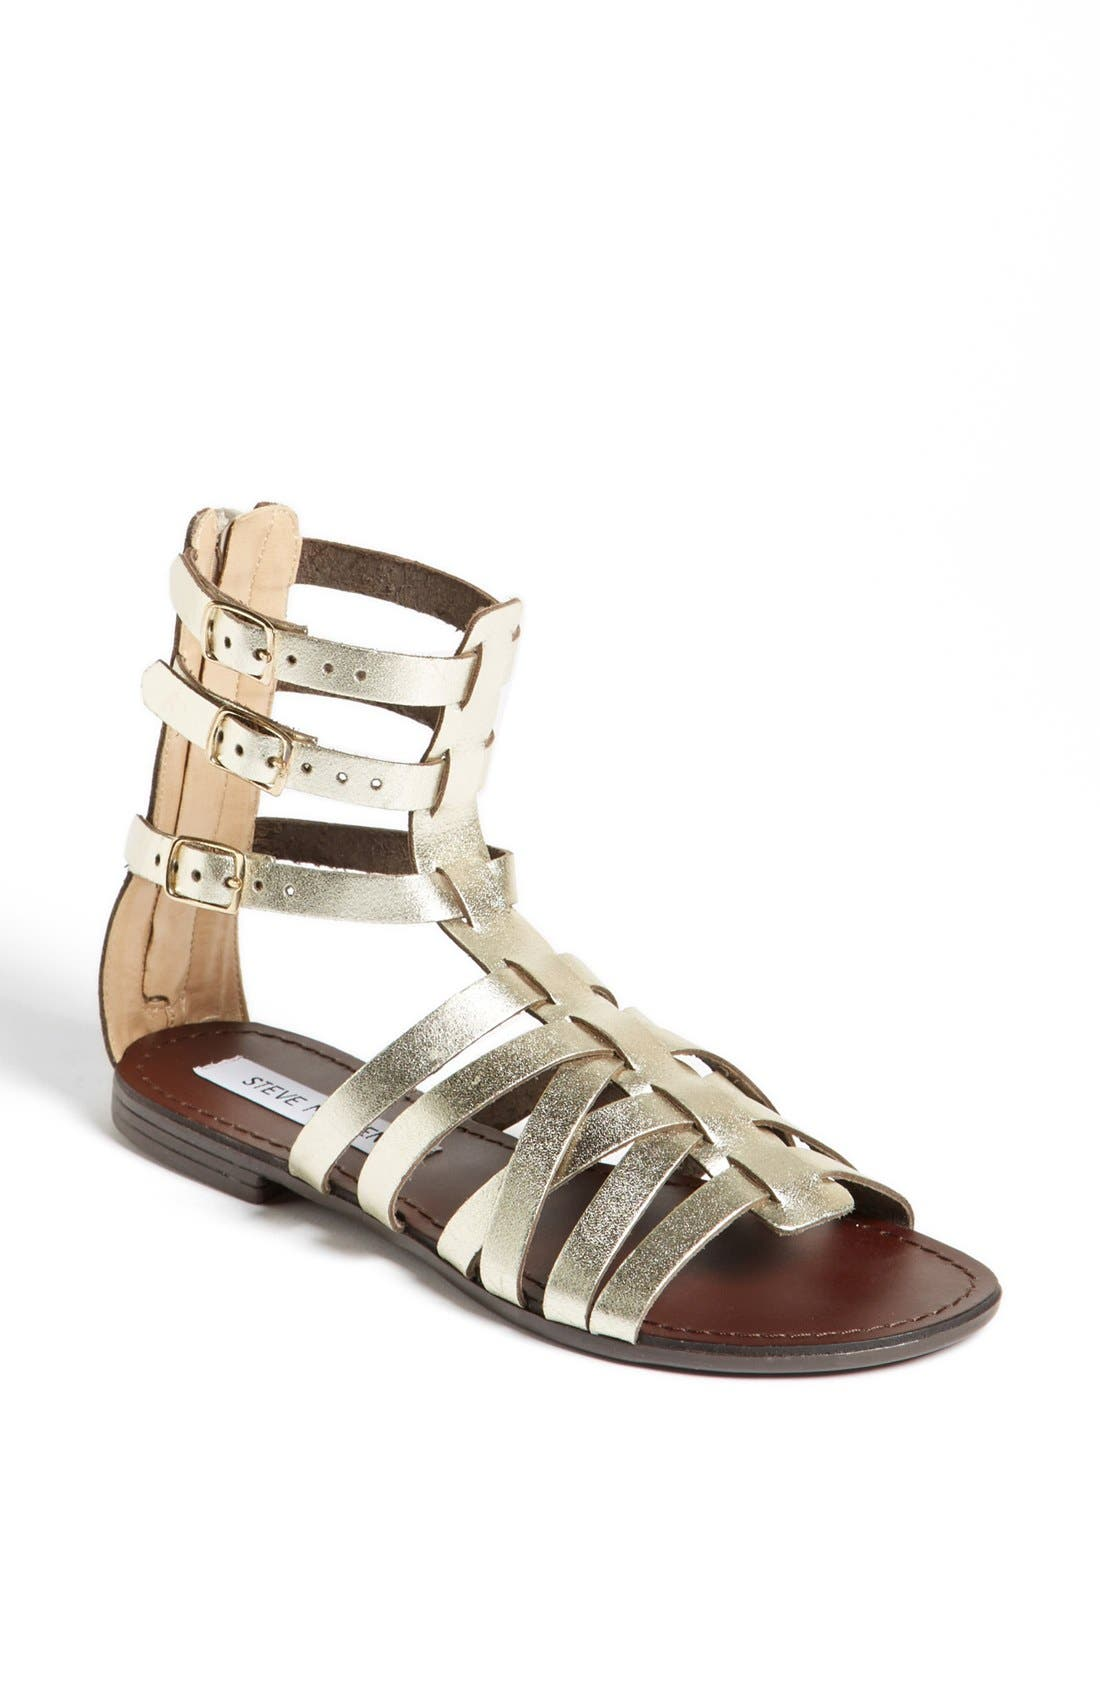 Alternate Image 1 Selected - Steve Madden 'Plato' Sandal